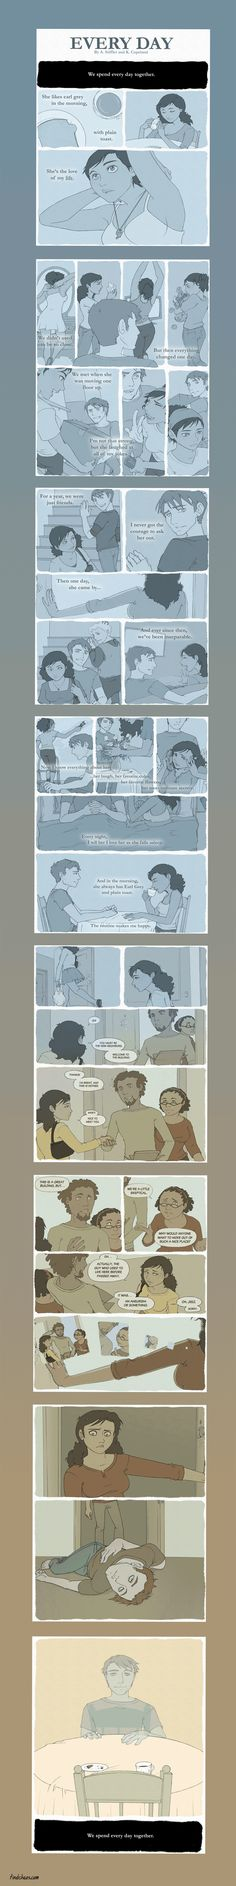 Every Day by A. Stiffler and K. Copeland -----ok that's not what I was expecting wtf screwing with my feels